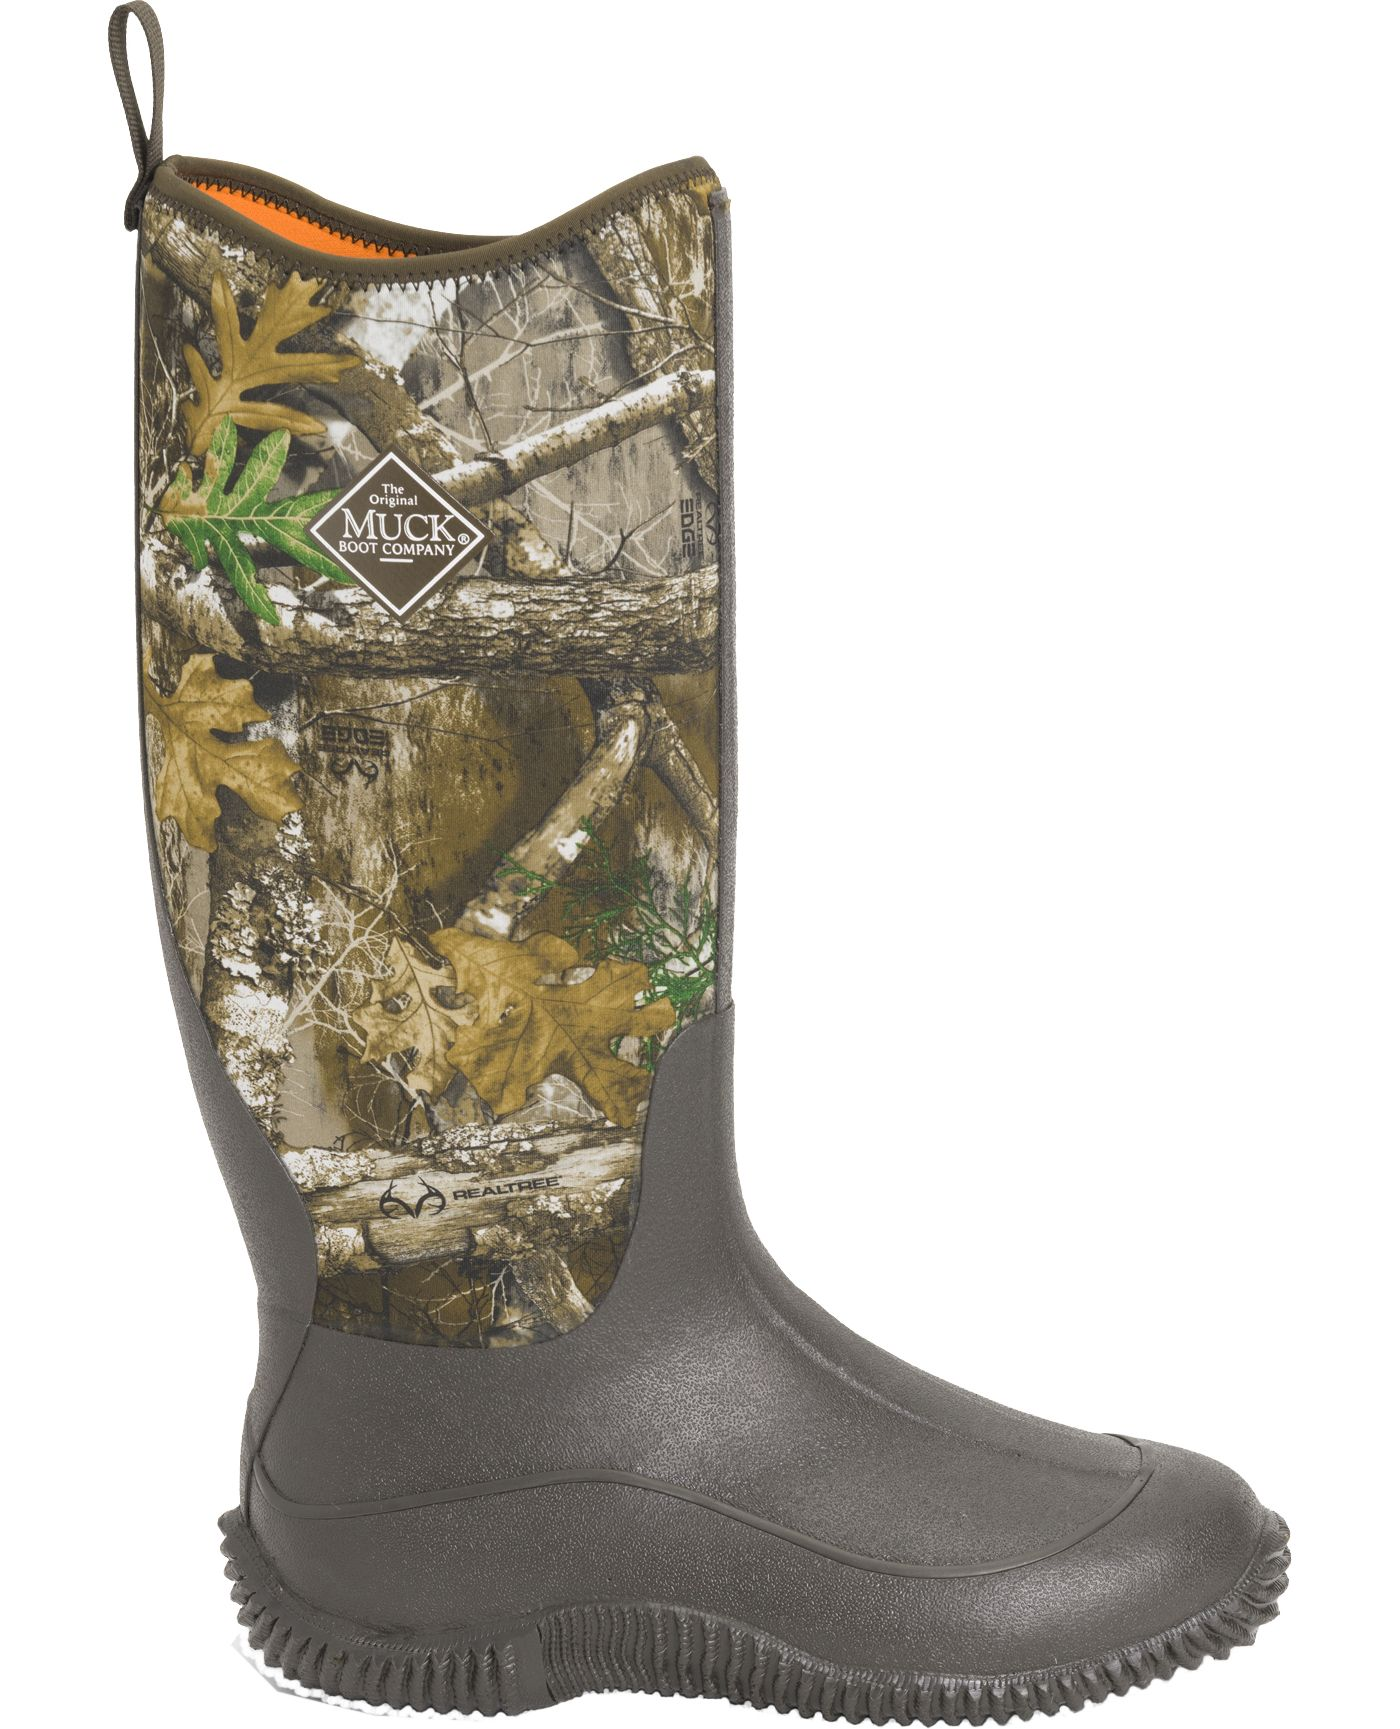 Muck Boots Women's Hale Realtree Edge Rubber Boots